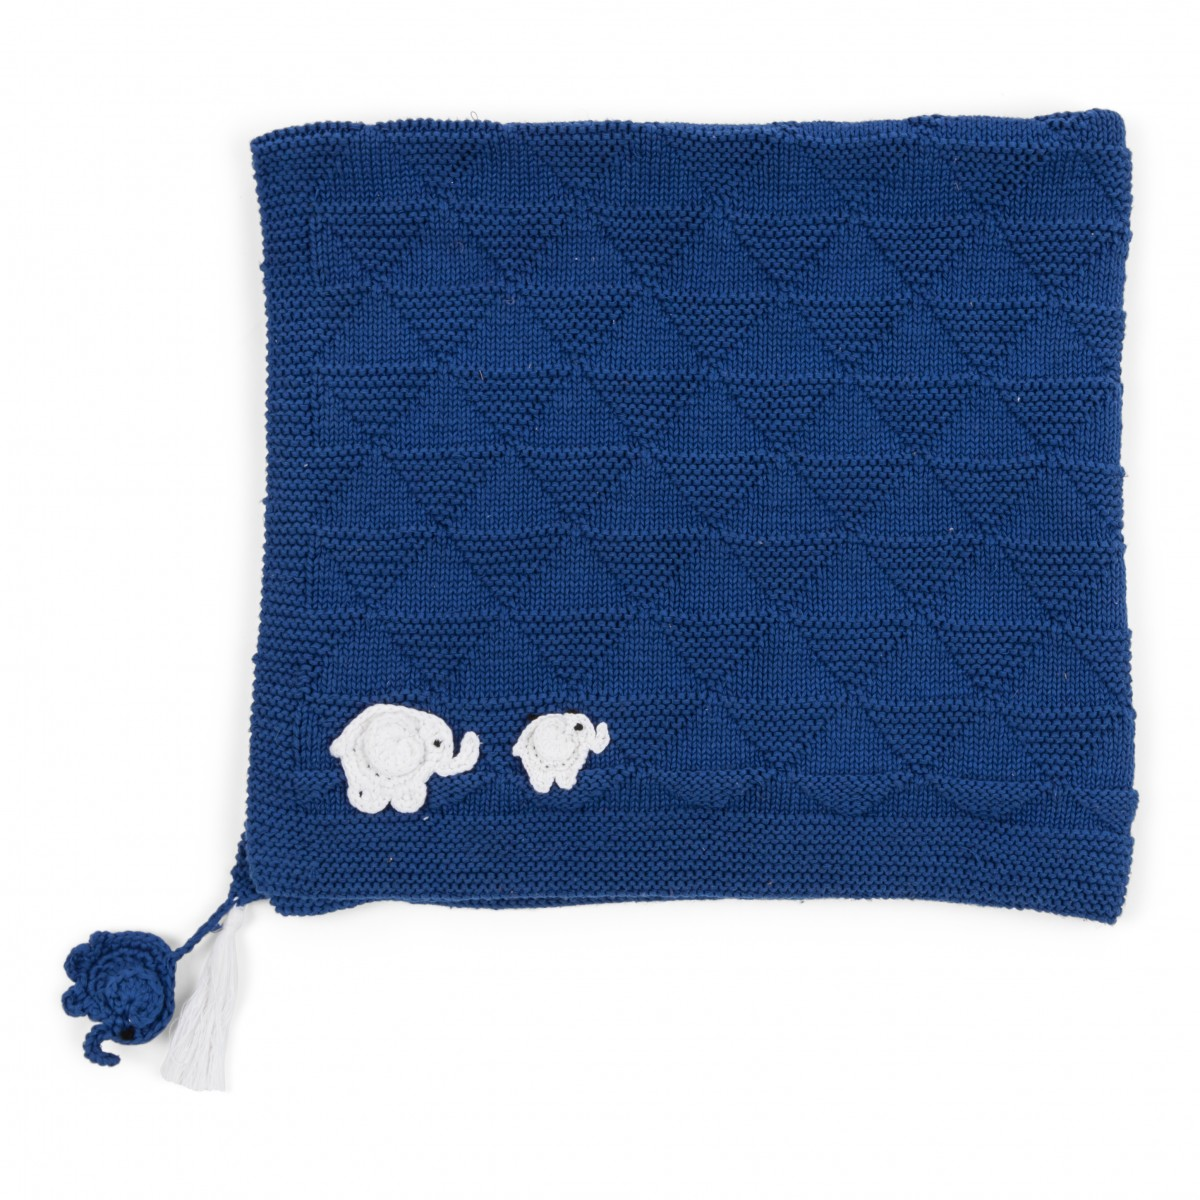 Blue And White Hand Knitted Baby Blanket W  Hand Knitted Baby Hat ... 7c99140cc3f